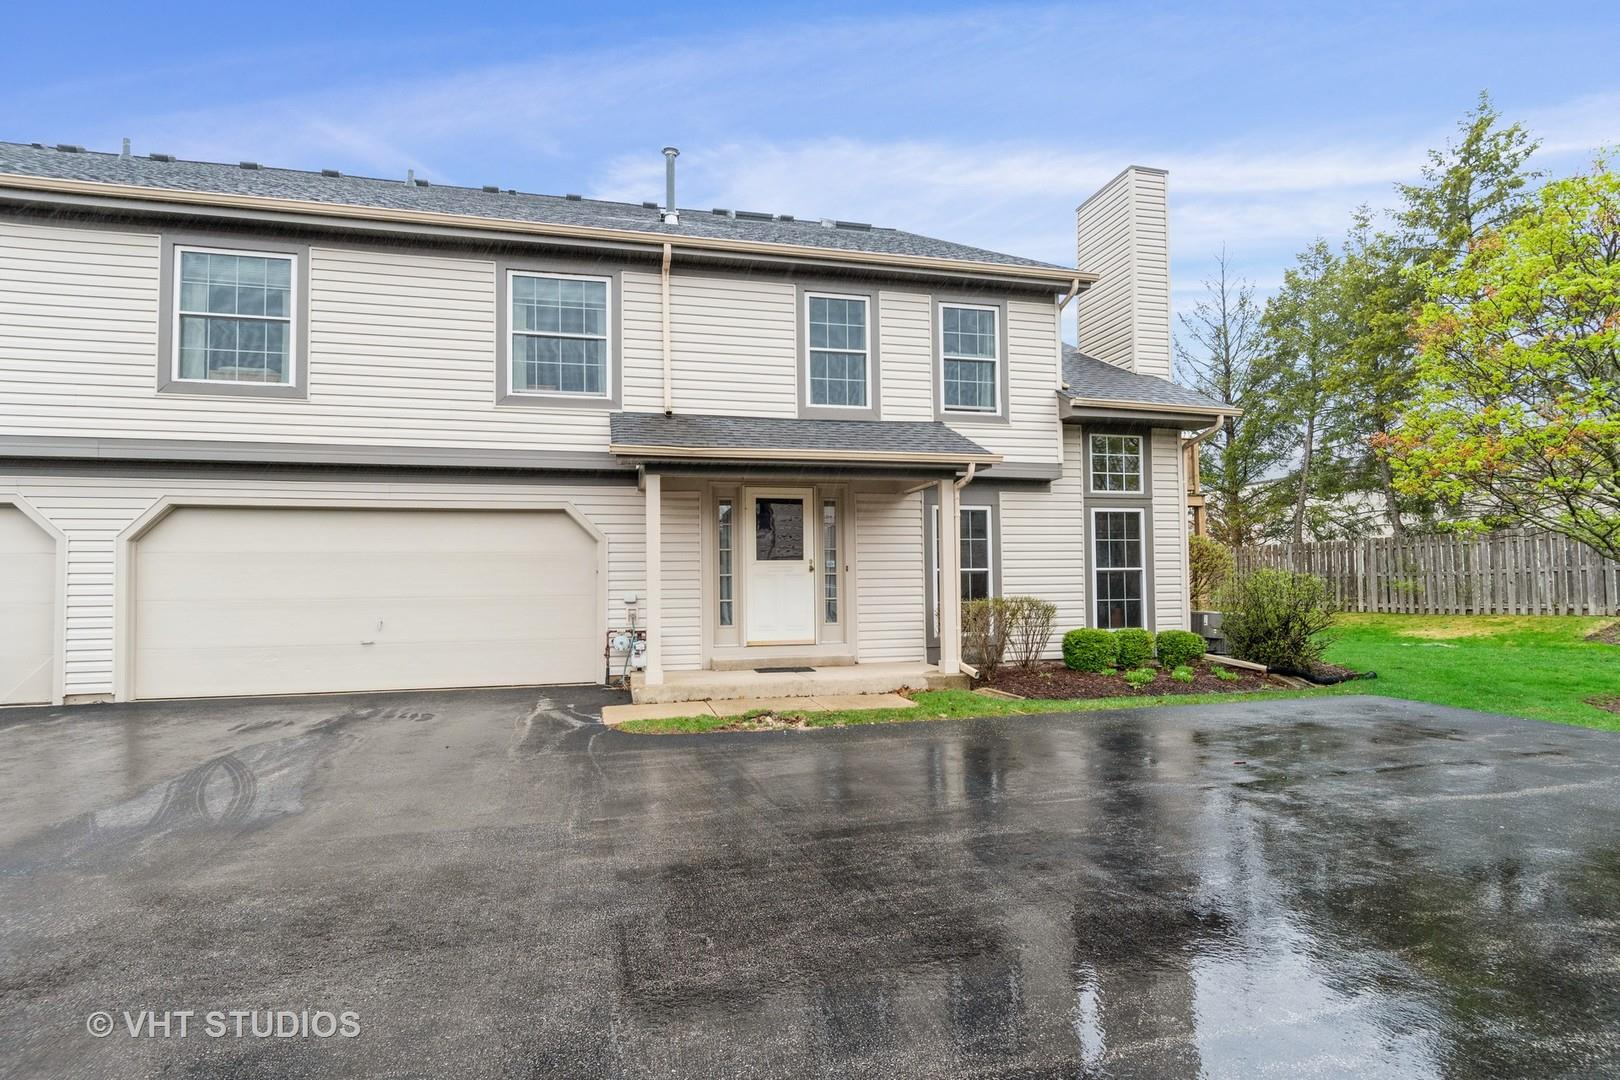 3s084 Timber Drive, Warrenville, IL 60555 - #: 11047973